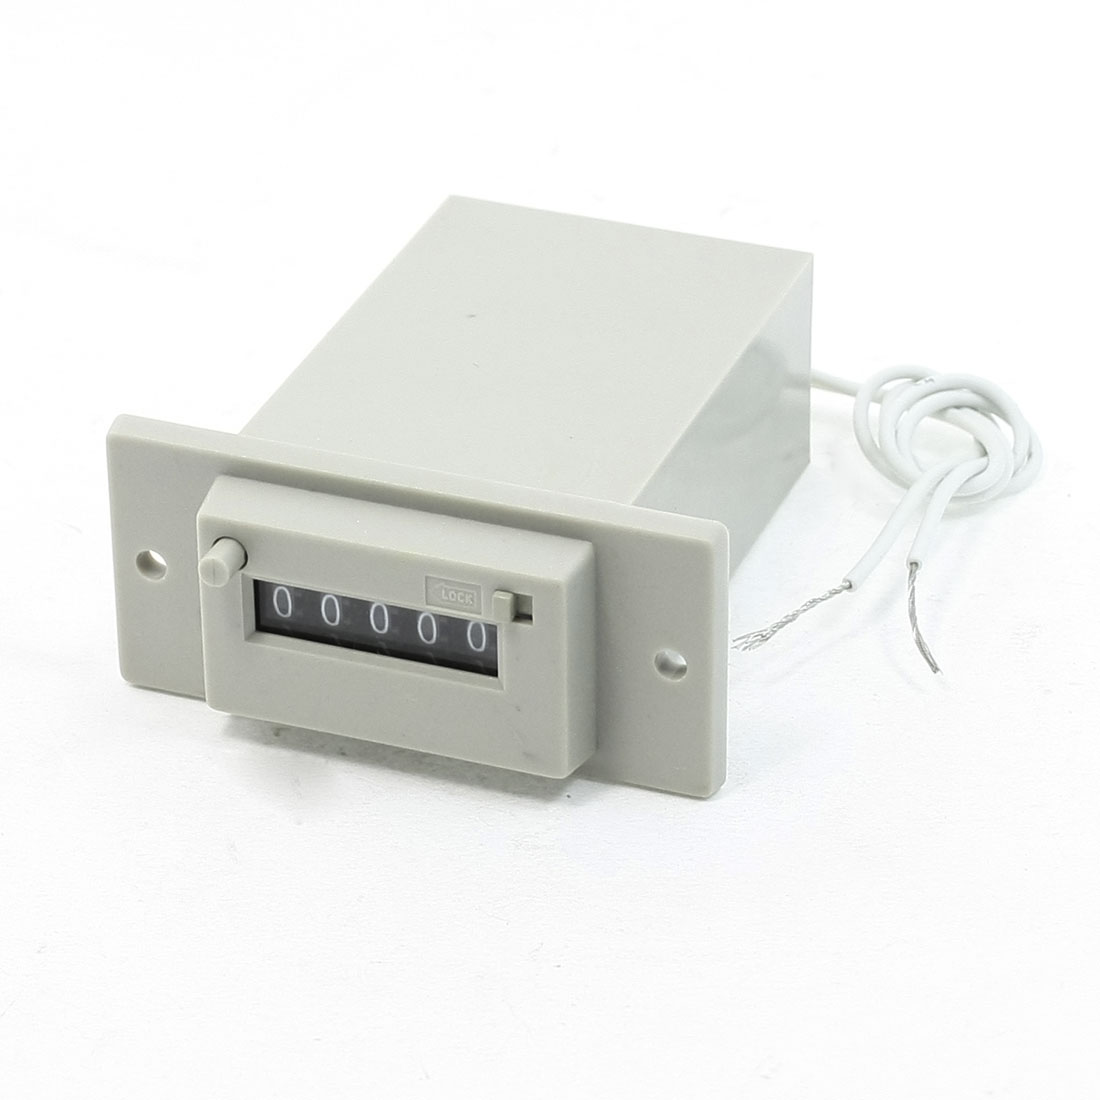 CSK5-CKW AC 220V 50/60Hz 5 Digits 2-Wire Lockable Electronmagnetic Counter